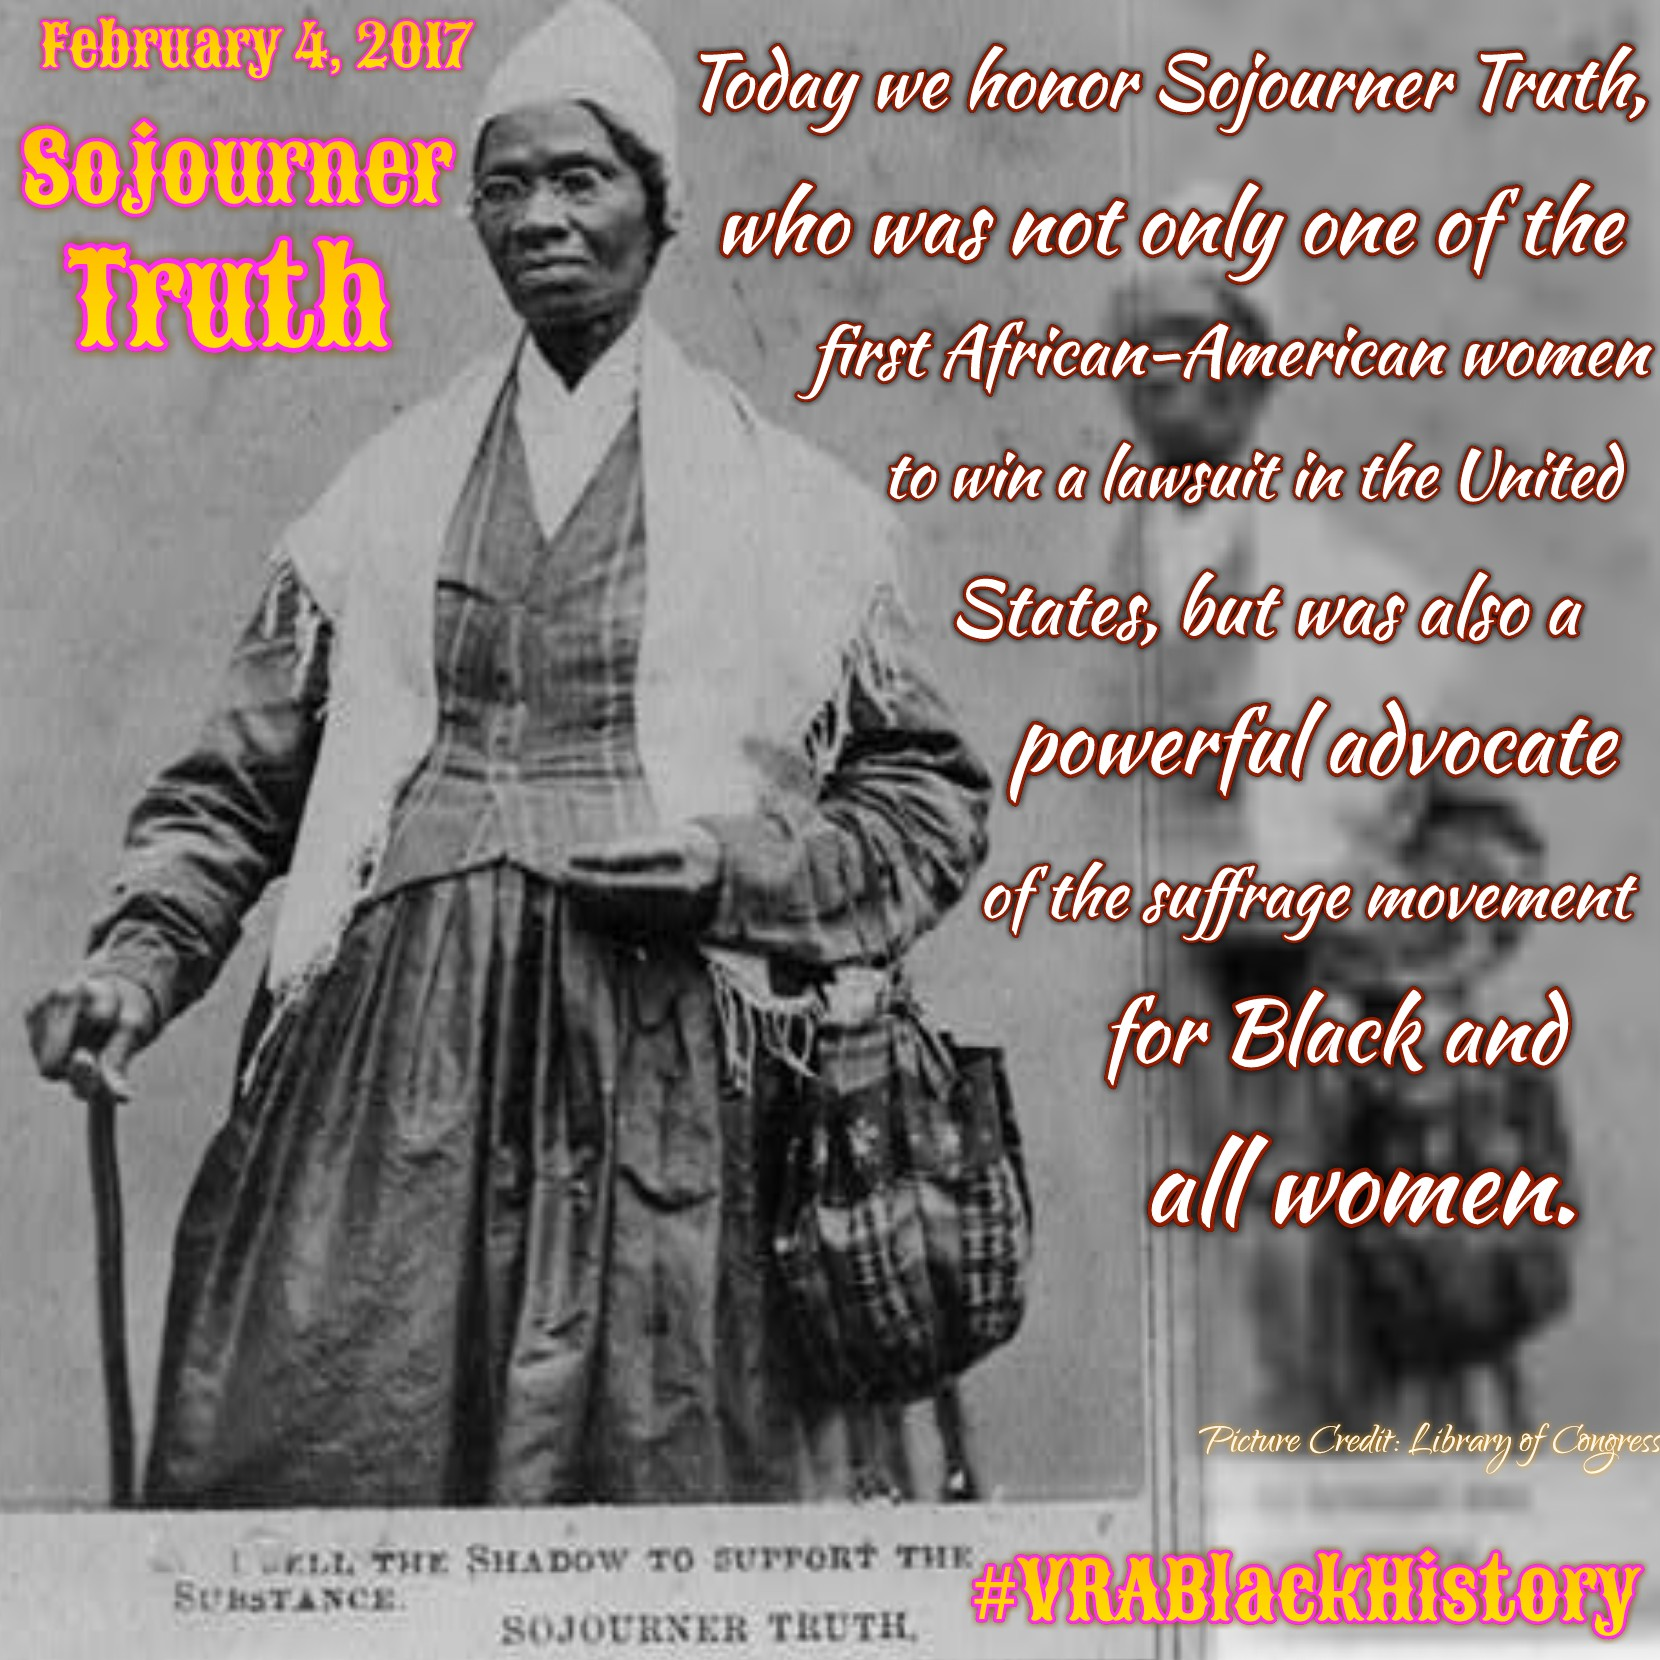 """Today we honor Sojourner Truth, who was not only  """"one of  the first African    American women to win a lawsuit in the United States"""", but was also a powerful advocate of the suffrage movement for Black and all women."""